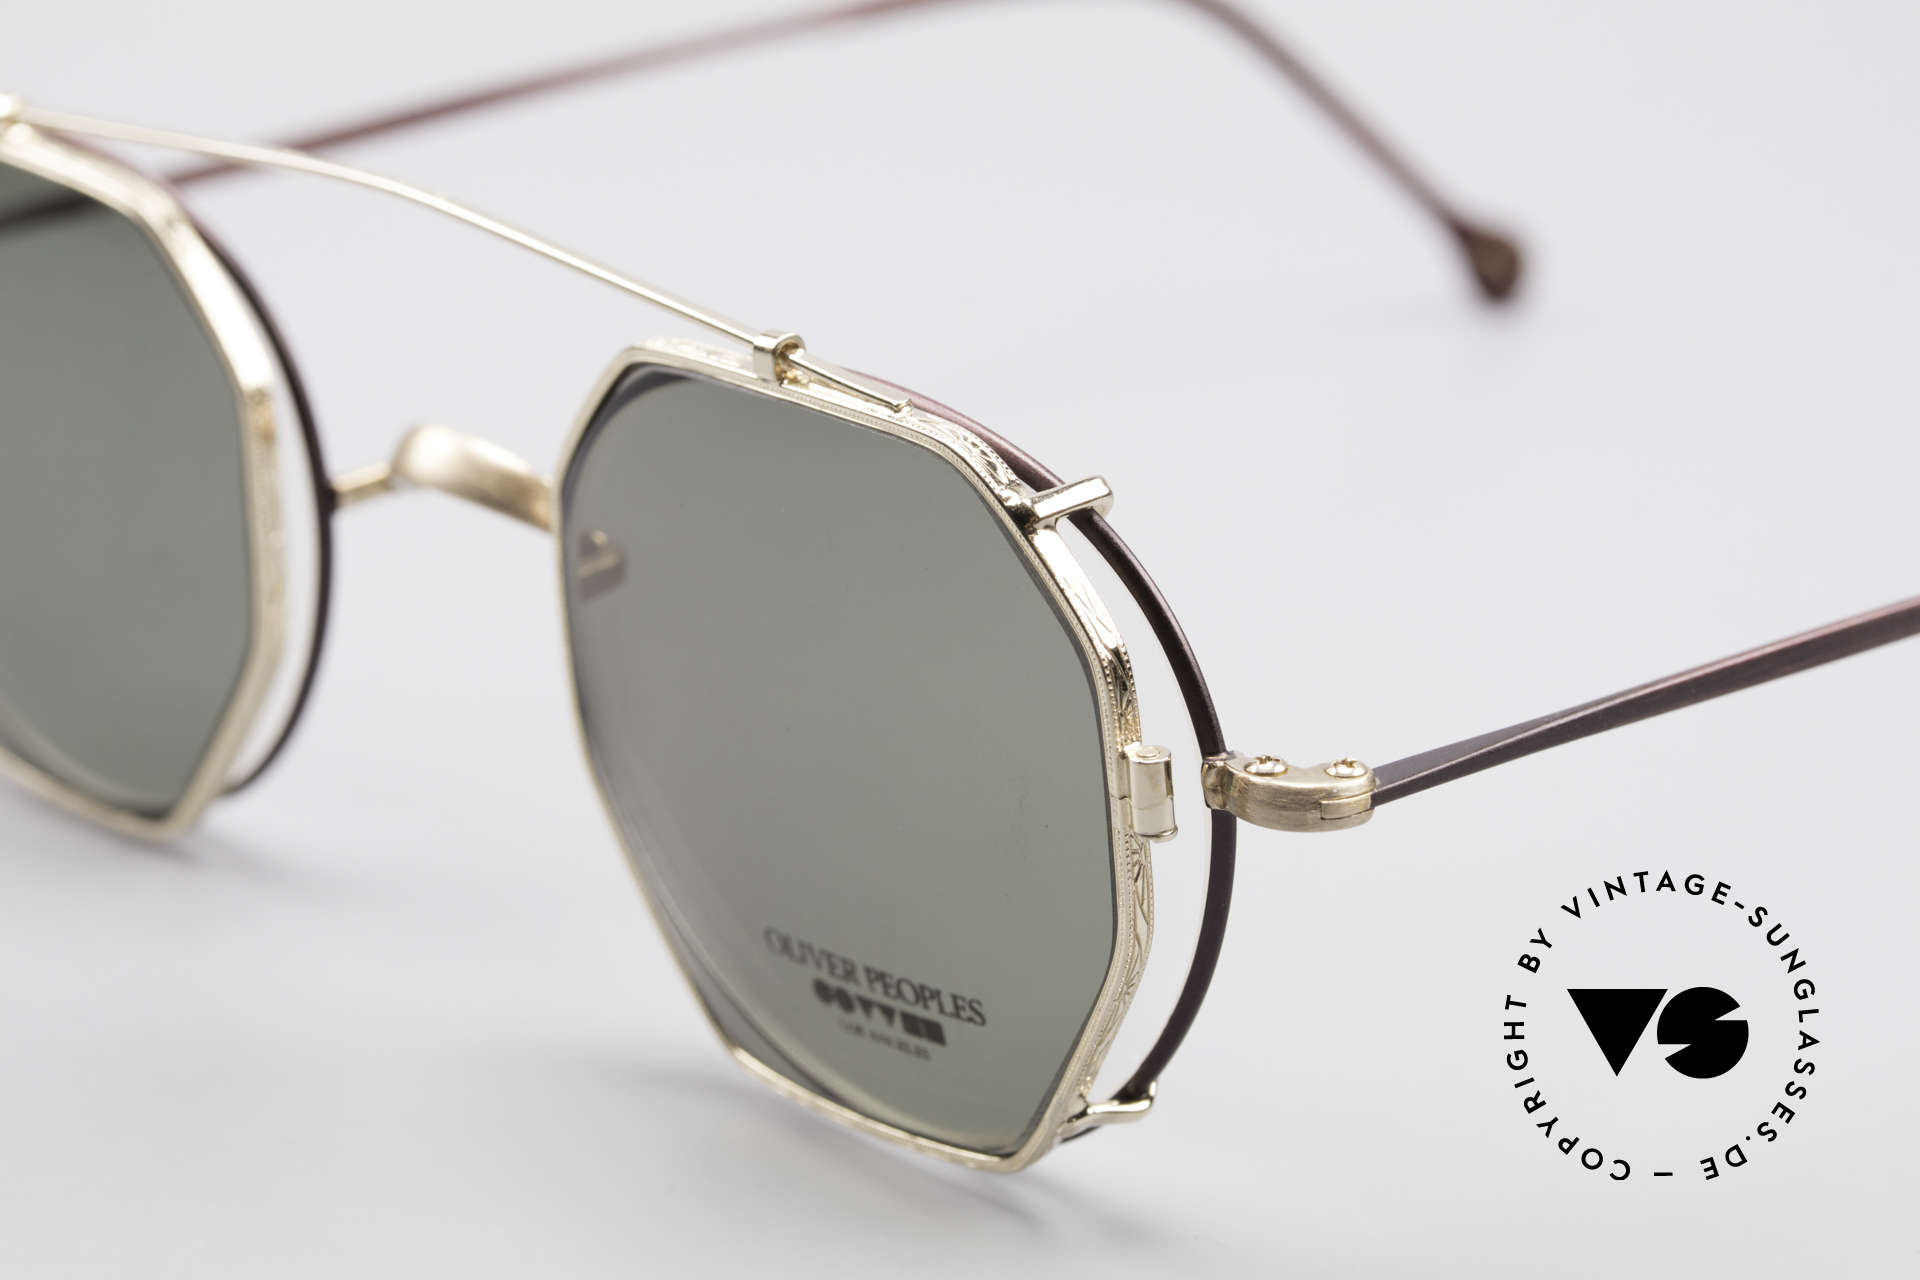 Oliver Peoples OP80BG 90's Vintage Frame Clip On, with square Clip-On of O.Peoples model OP-14 in gold, Made for Men and Women